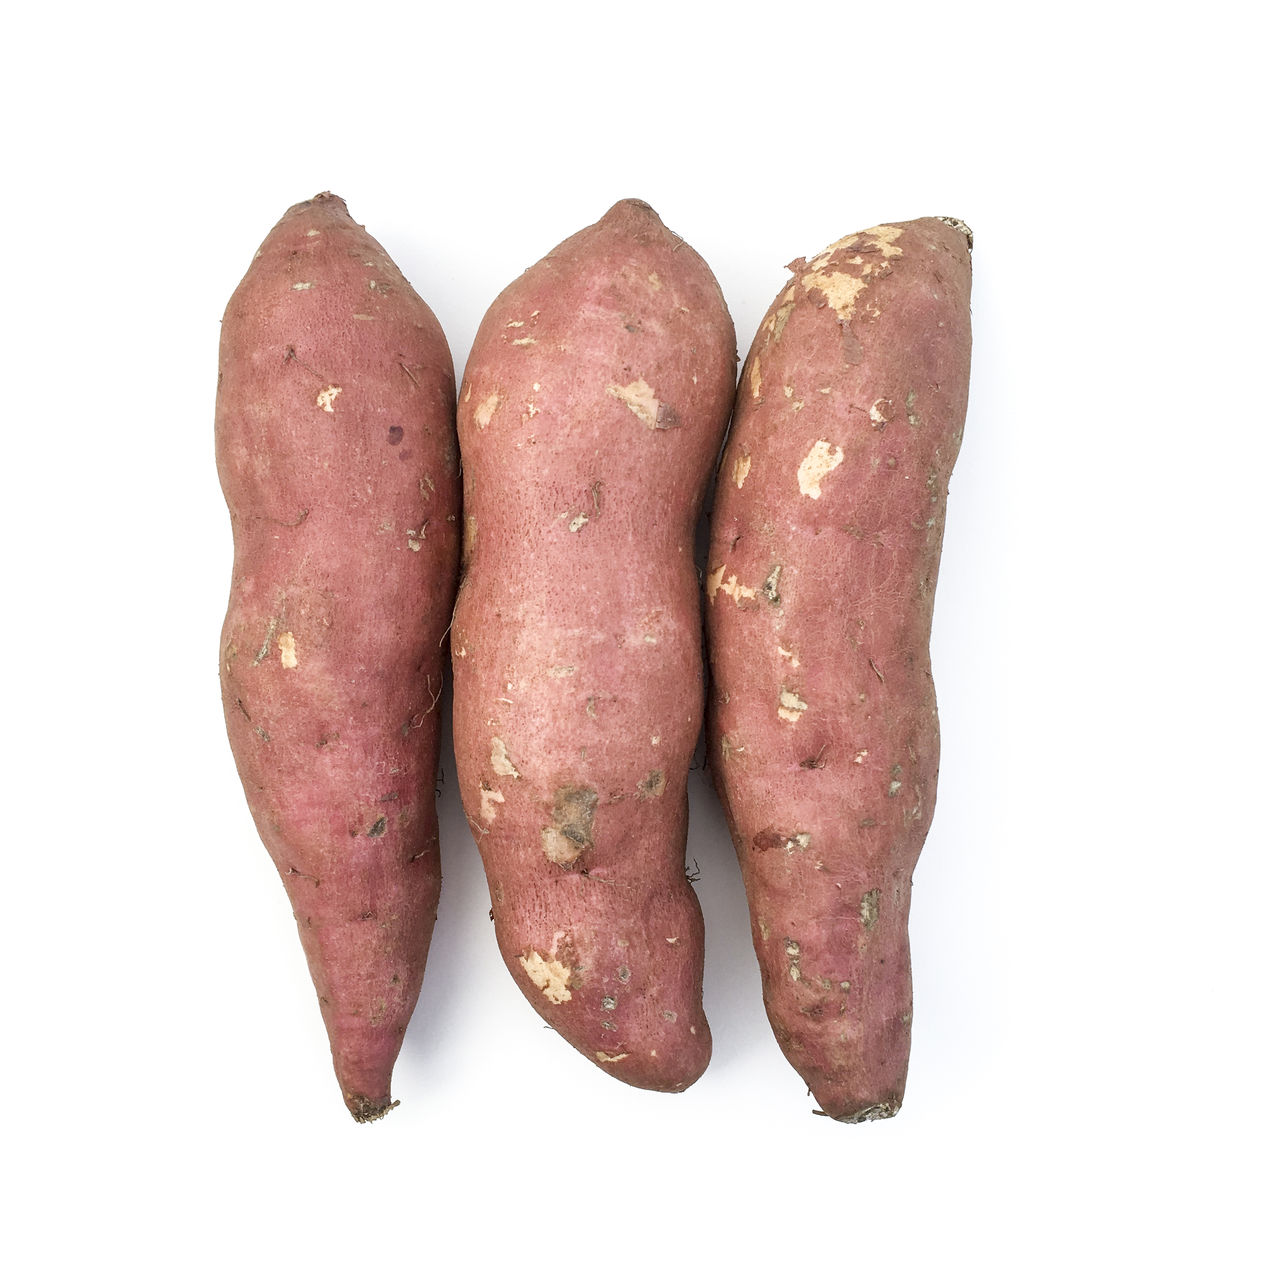 Sweet Potatoes Close-up Cut Out Food Food And Drink Freshness Healthy Eating Red Root Skin Skins Still Life Studio Shot Sweet Potato Sweet Potatoes Vegetable White Background